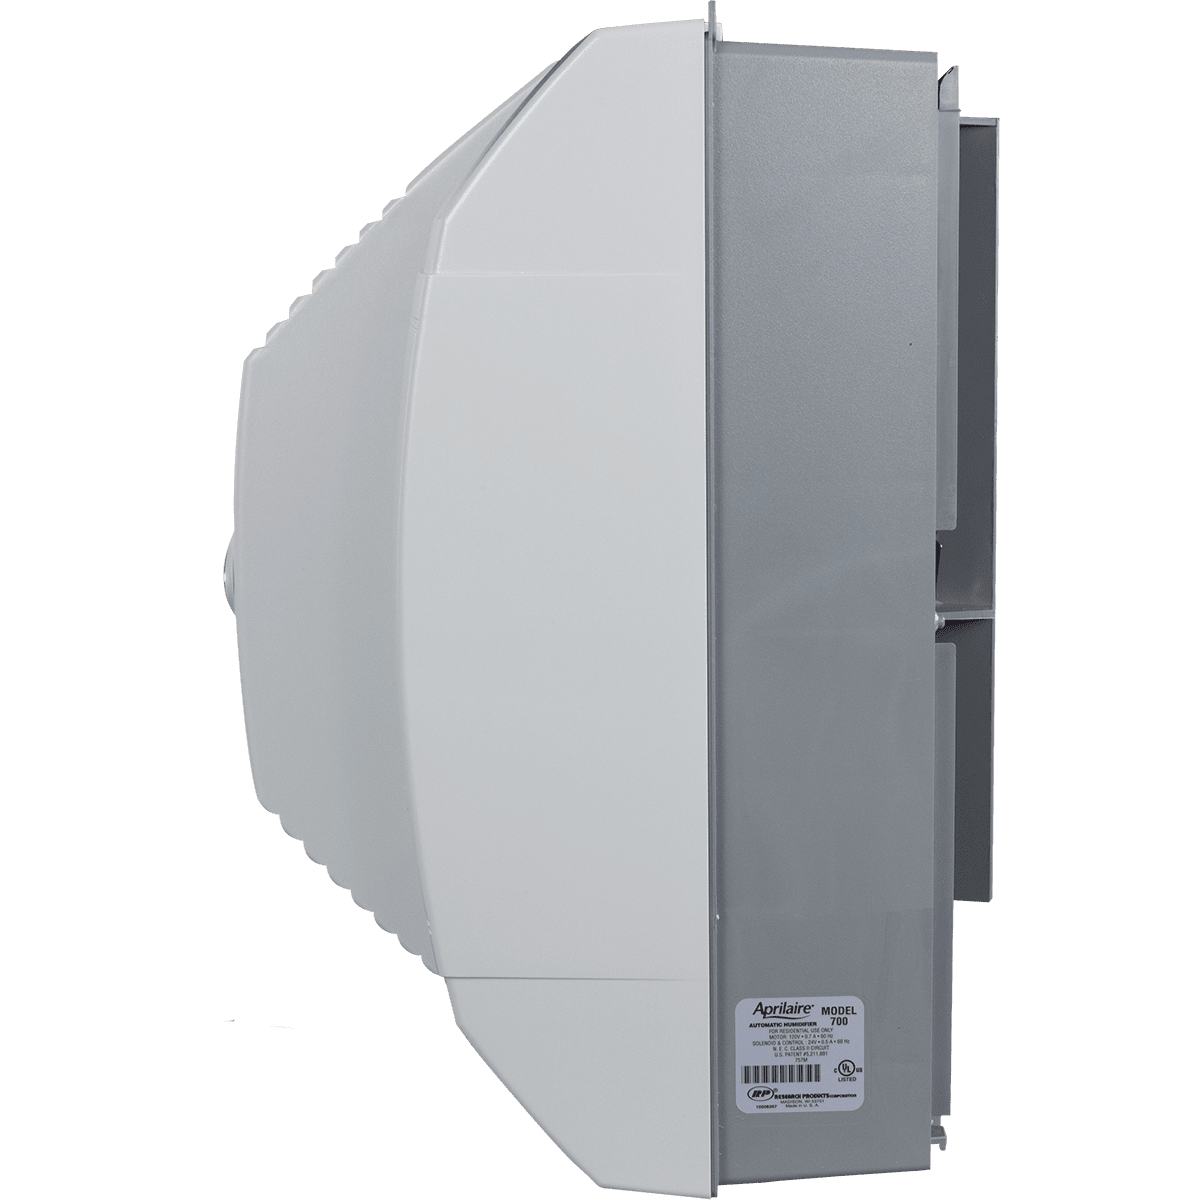 Aprilaire Model 700 High-Capacity Whole House Humidifiers